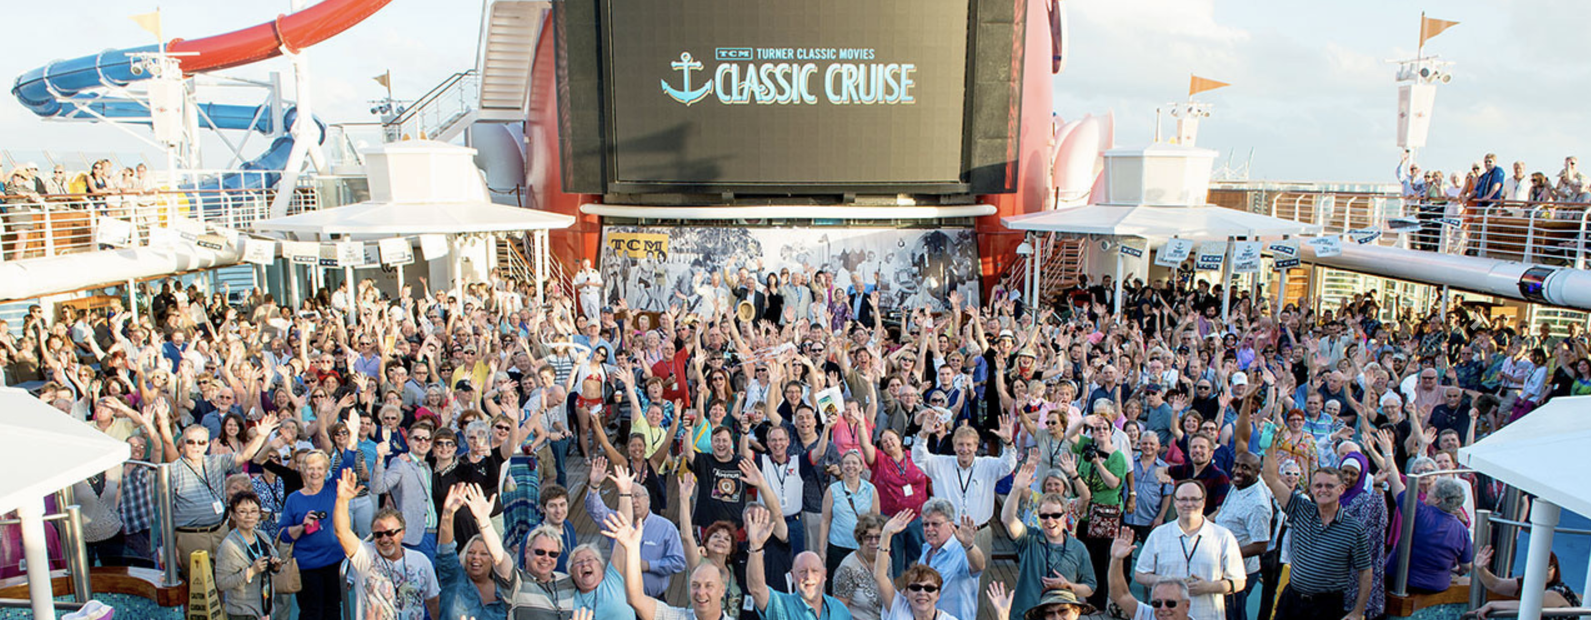 Films at Sea – Turner Classic Movie Cruise to Return After 3-Year Hiatus